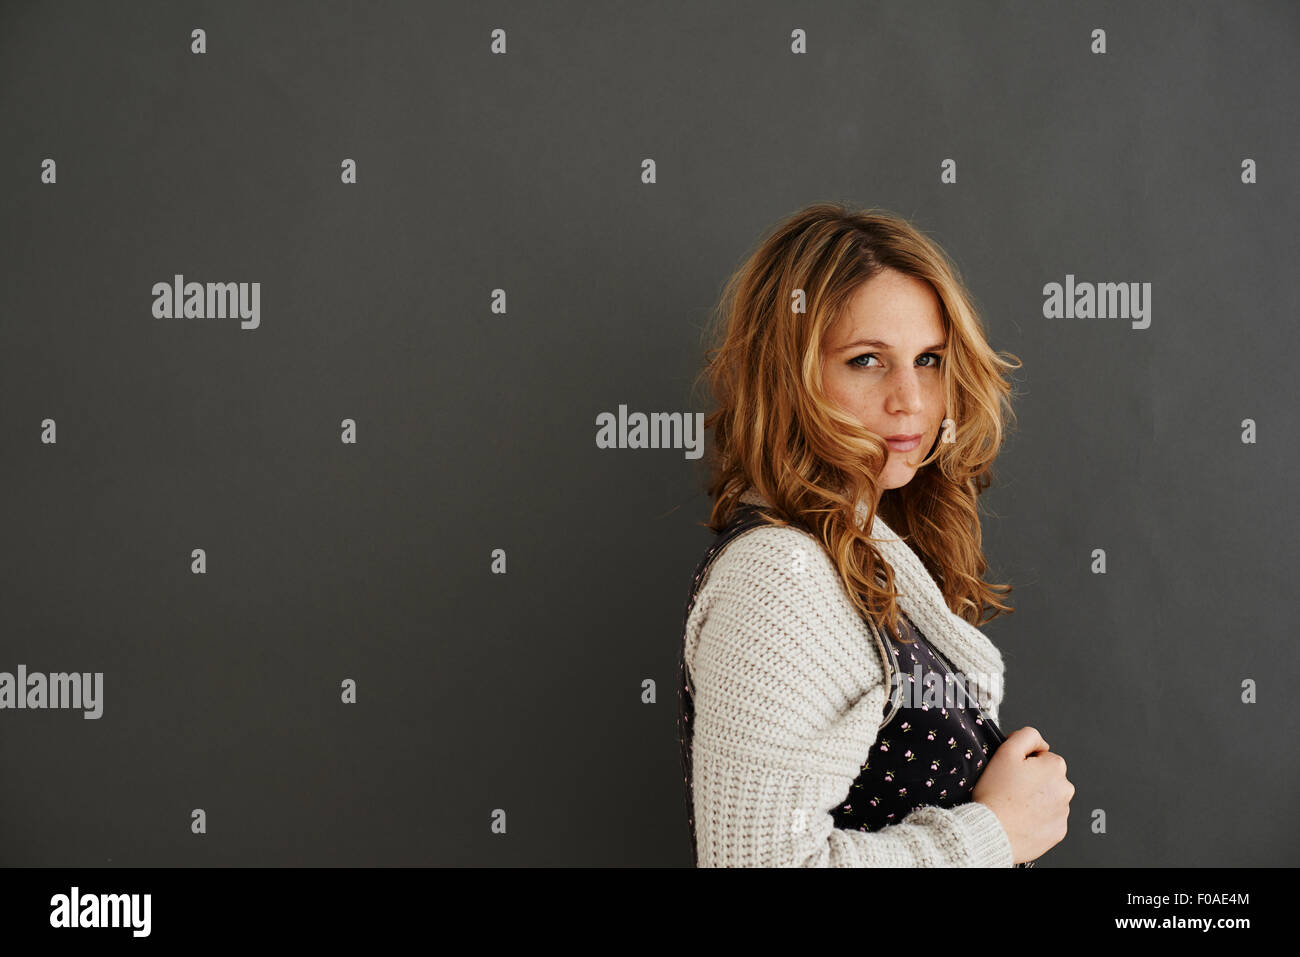 Mid adult woman side view looking at camera - Stock Image